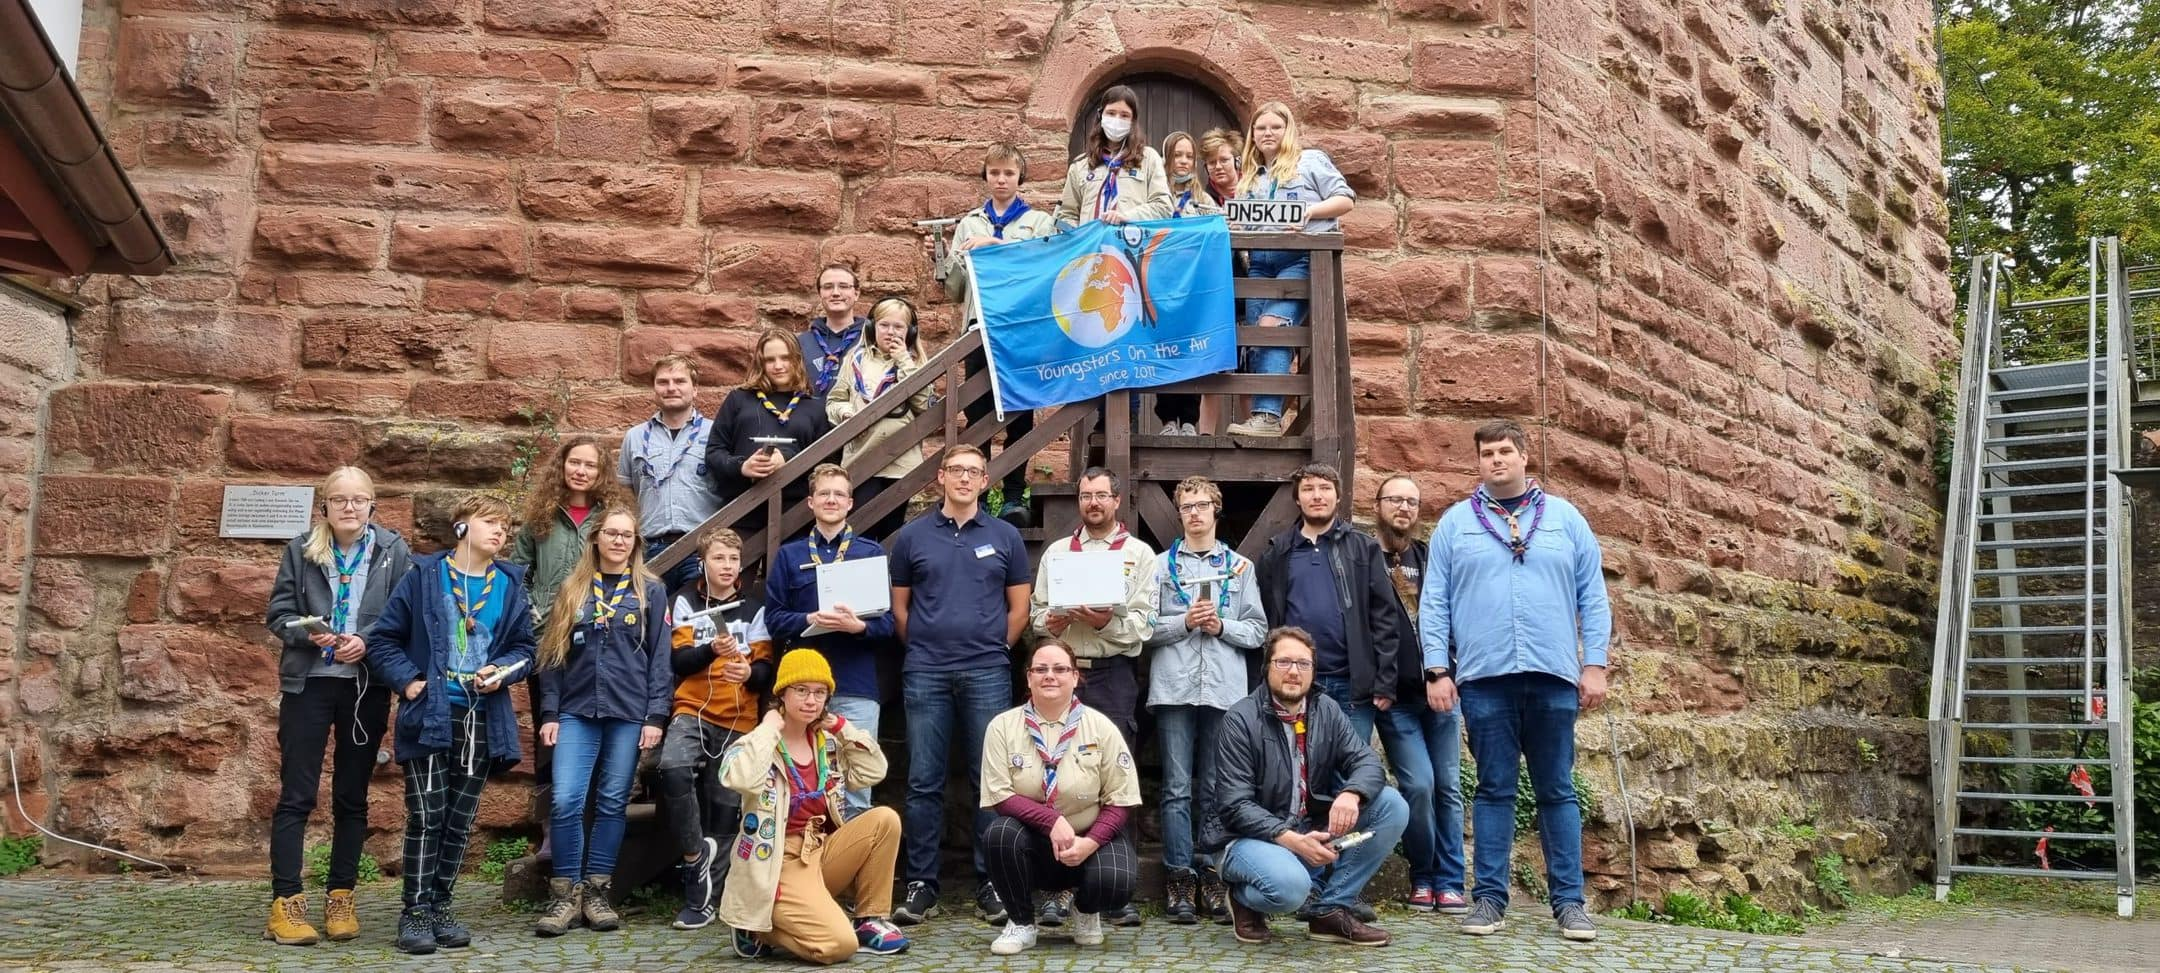 IARU R1 Youth Working Group connecting with Scouts in Europe